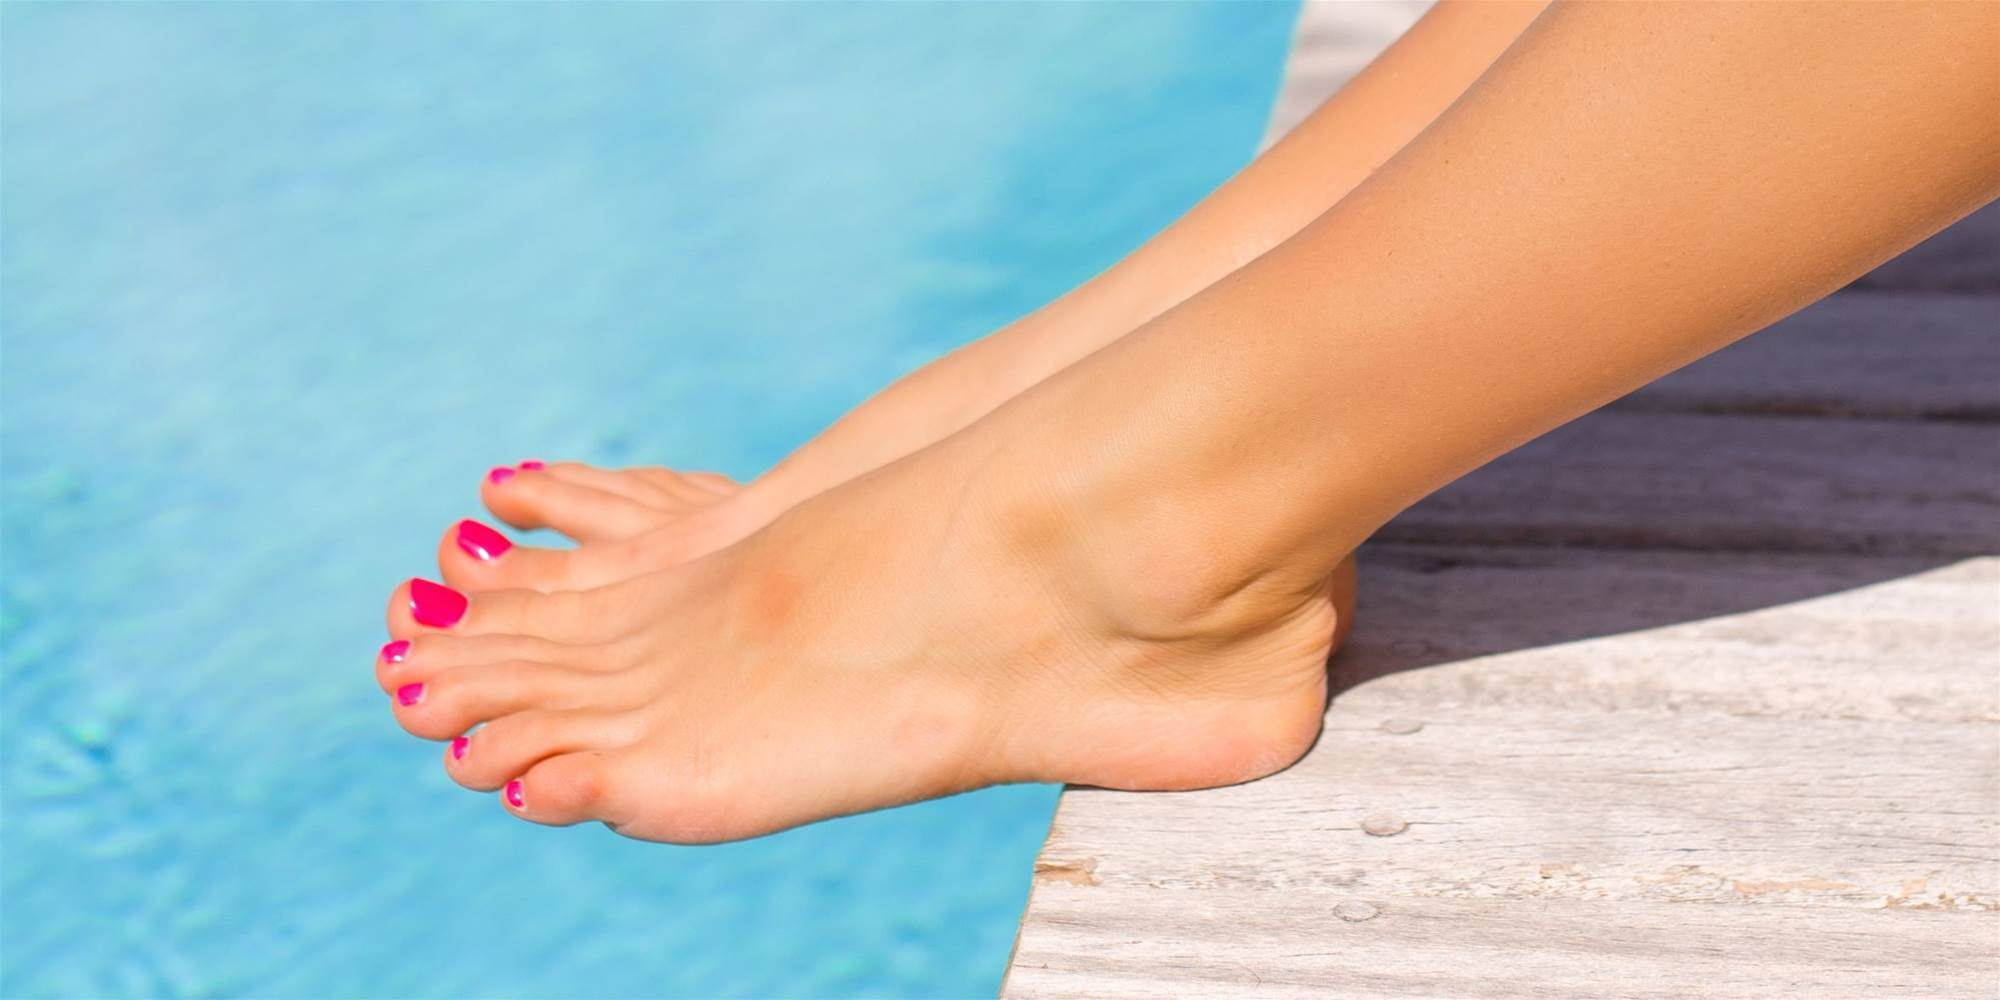 The Best Home Remedies to Soften Dry, Cracked Heels